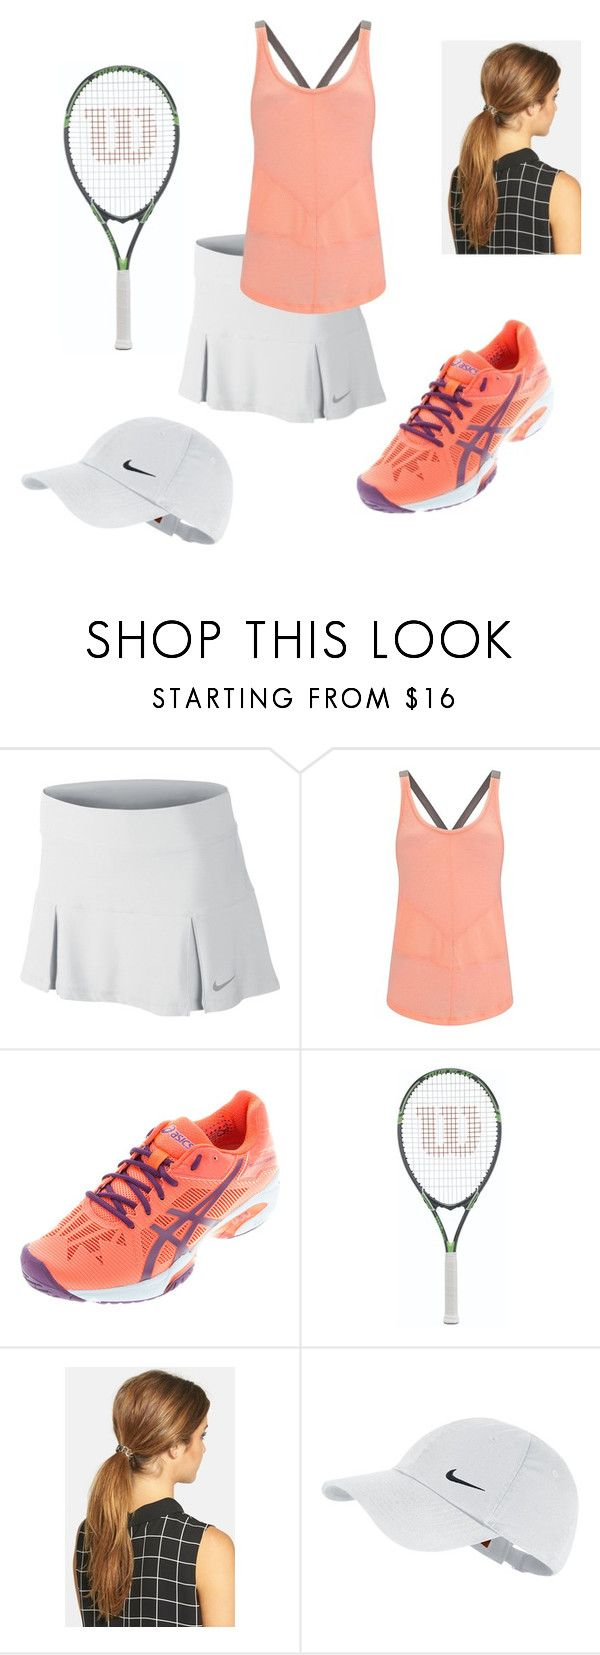 """""""Tennis"""" by maggieglander ❤ liked on Polyvore featuring NIKE, Sweaty Betty, Asics and Ficcare"""